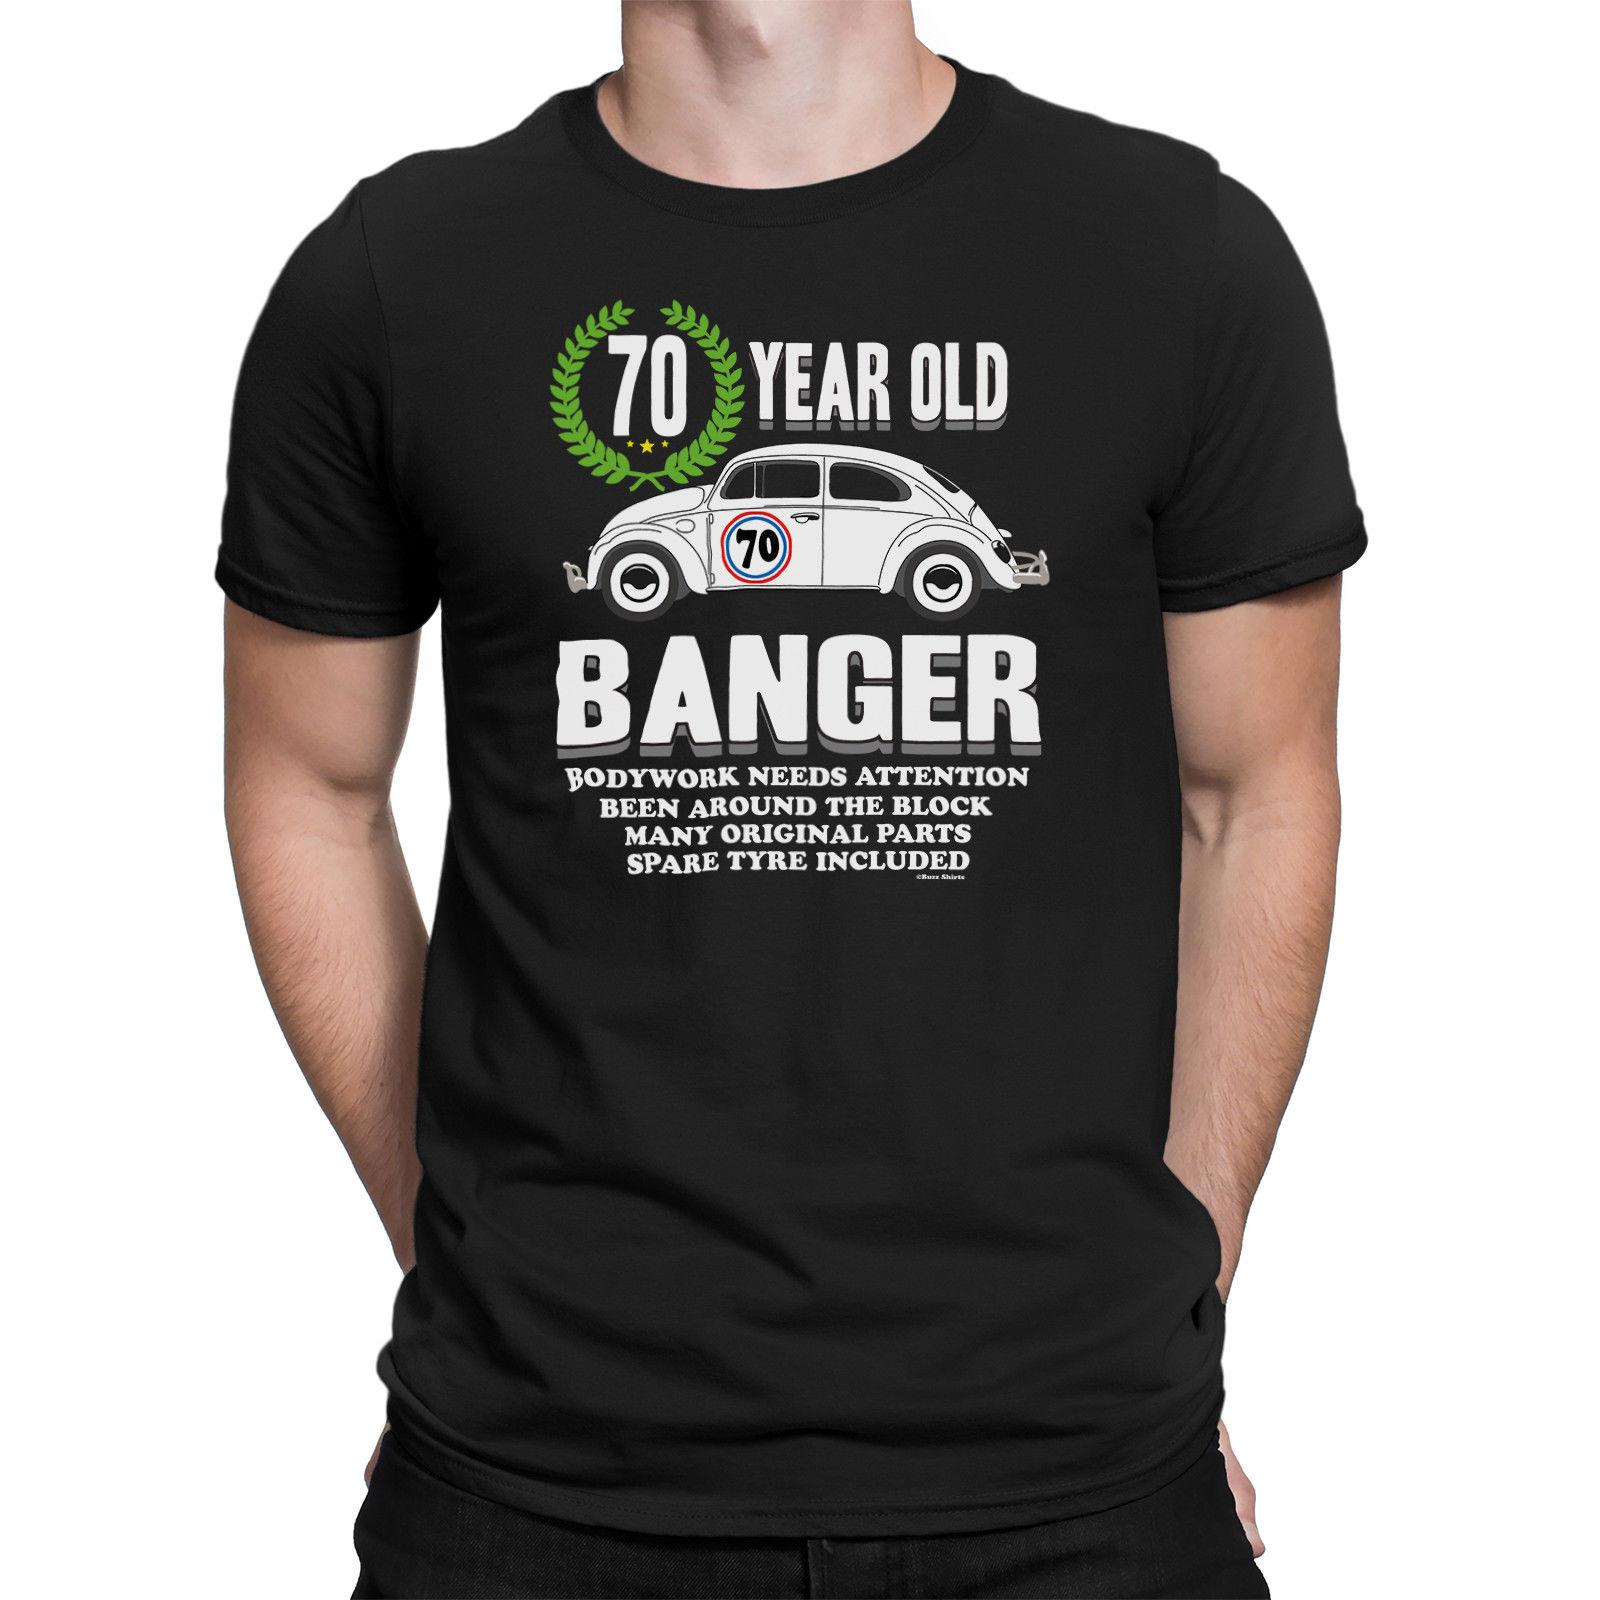 48832664a Details Zu Mens 70th BIRTHDAY TShirt OLD BANGER 70 Years Old Joke Gift  Seventy That T Shirt But T Shirts From Lukehappy13, $12.96| DHgate.Com